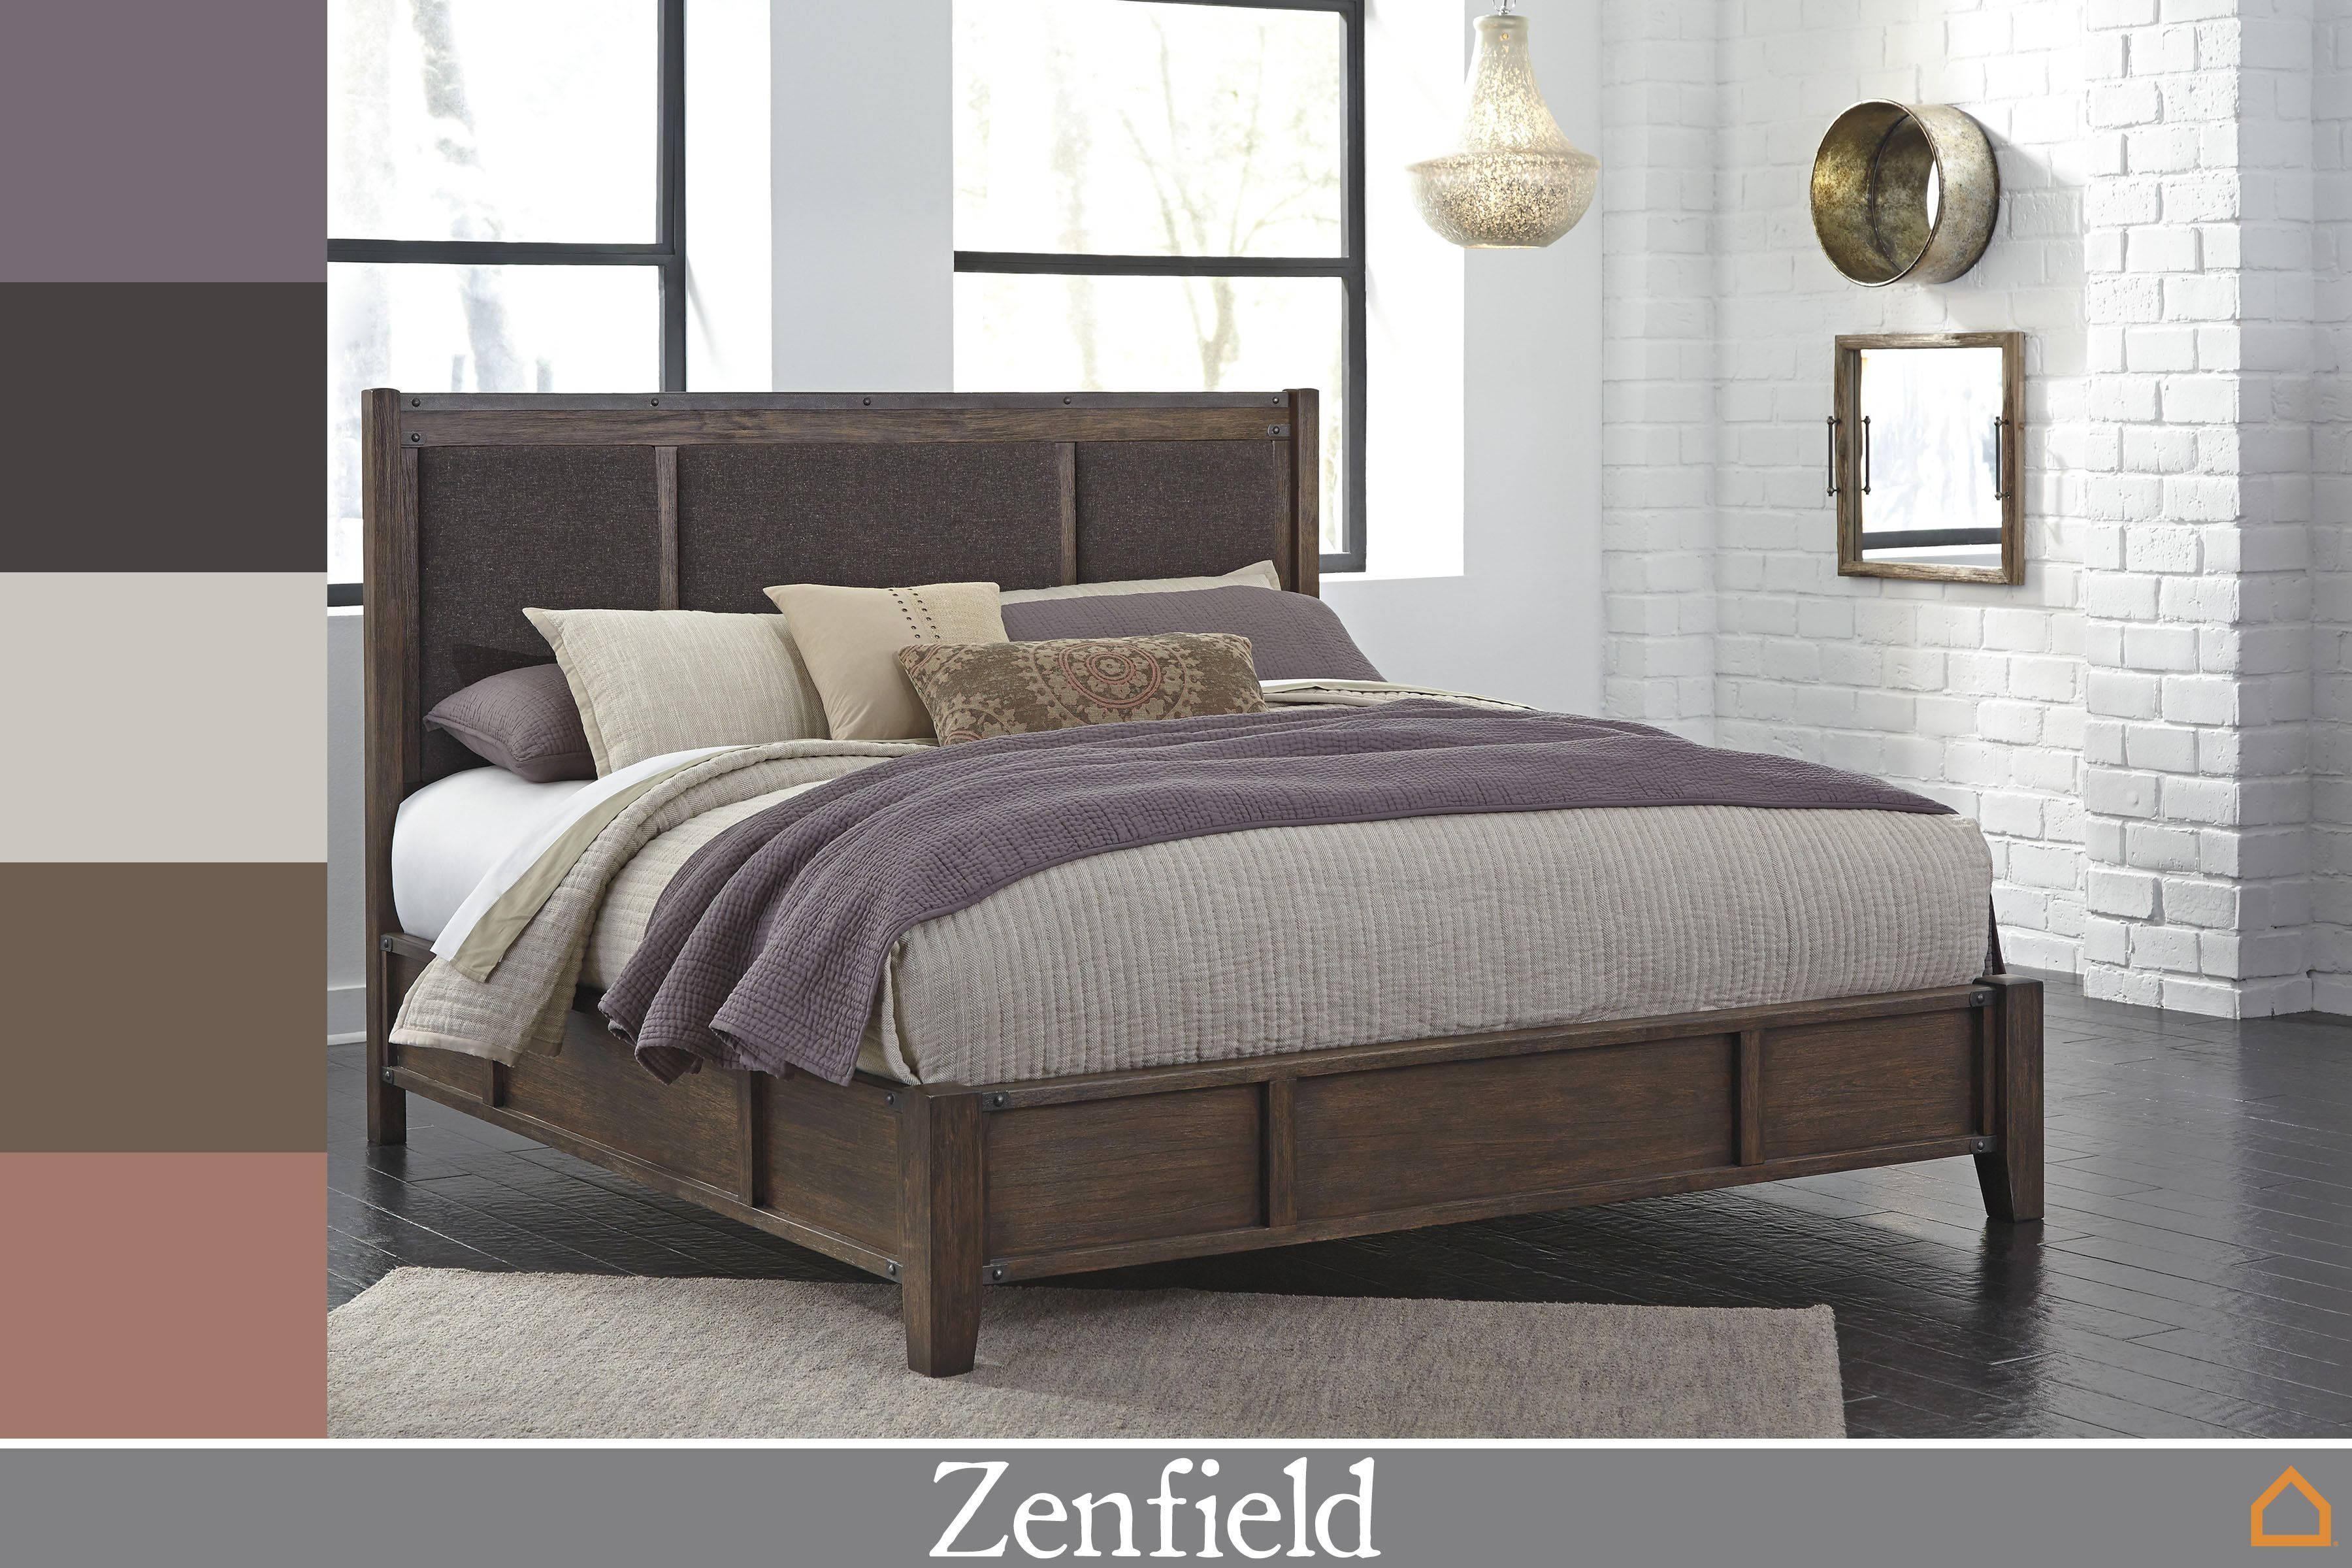 Dress Up Our Zenfield Bed With Muted Colors With Images King Upholstered Bed Stylish Bedroom Furniture Bedroom Furniture